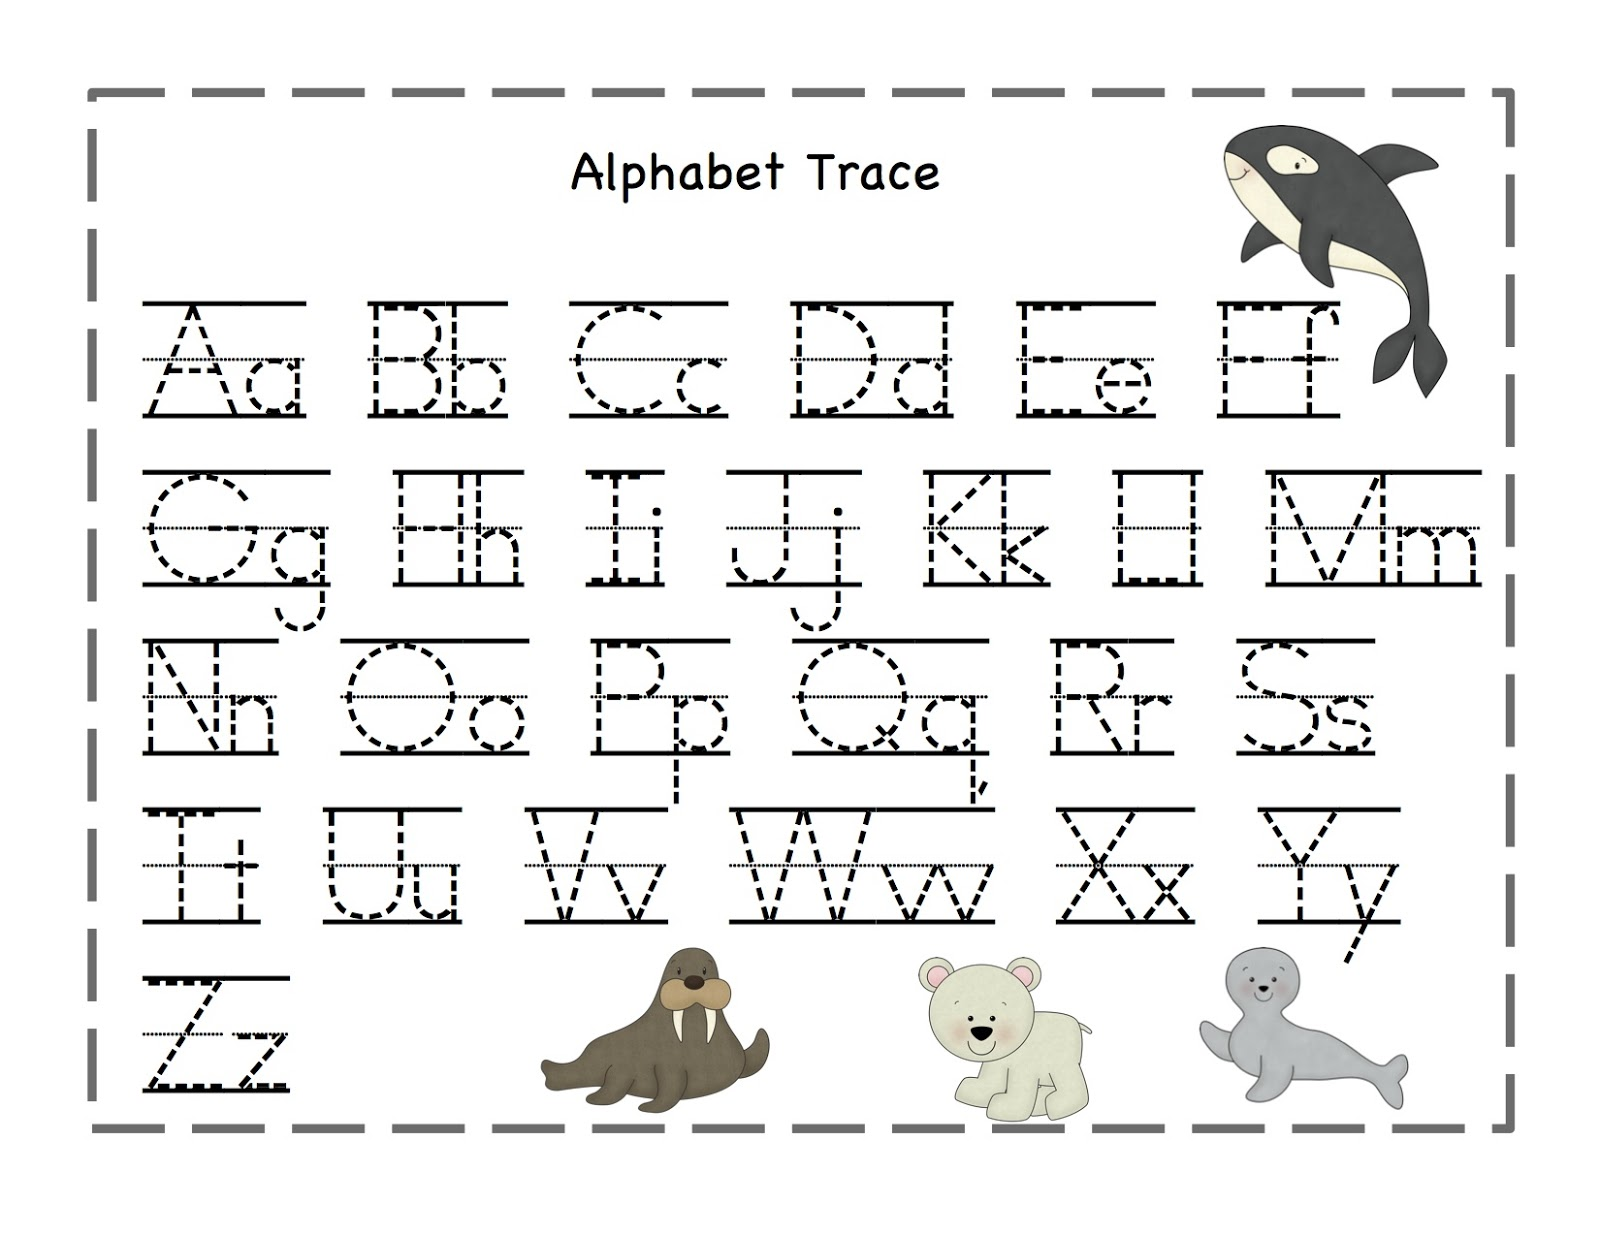 Worksheet Alphabet Letters To Trace Wosenly Free Worksheet – Free Printable Tracing Worksheets